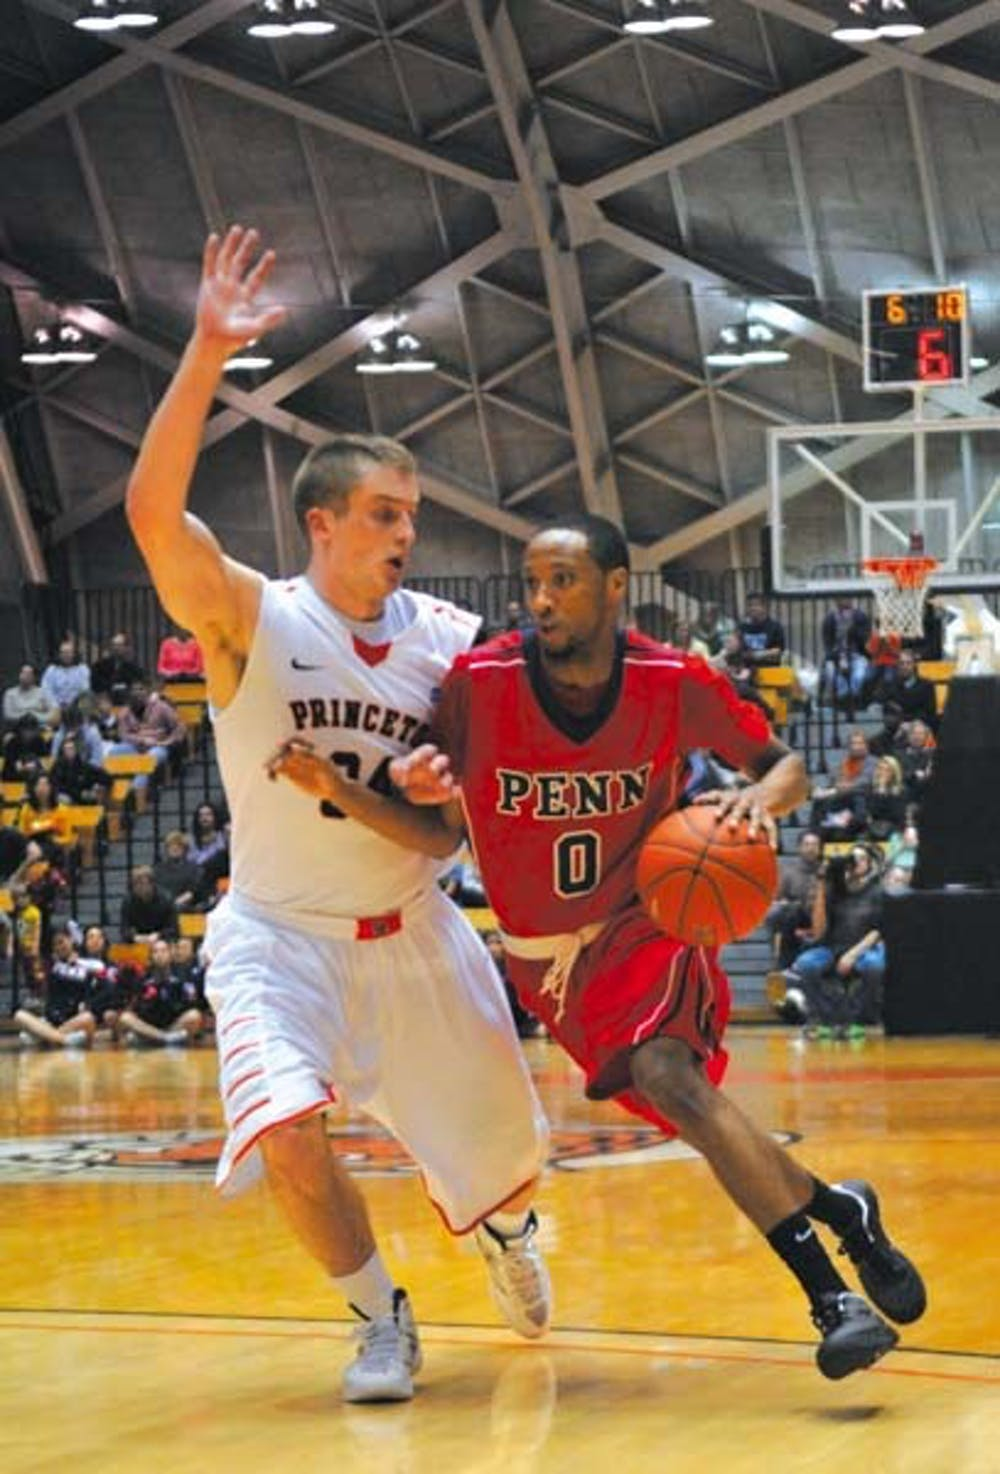 Men's basketball vs Princeton